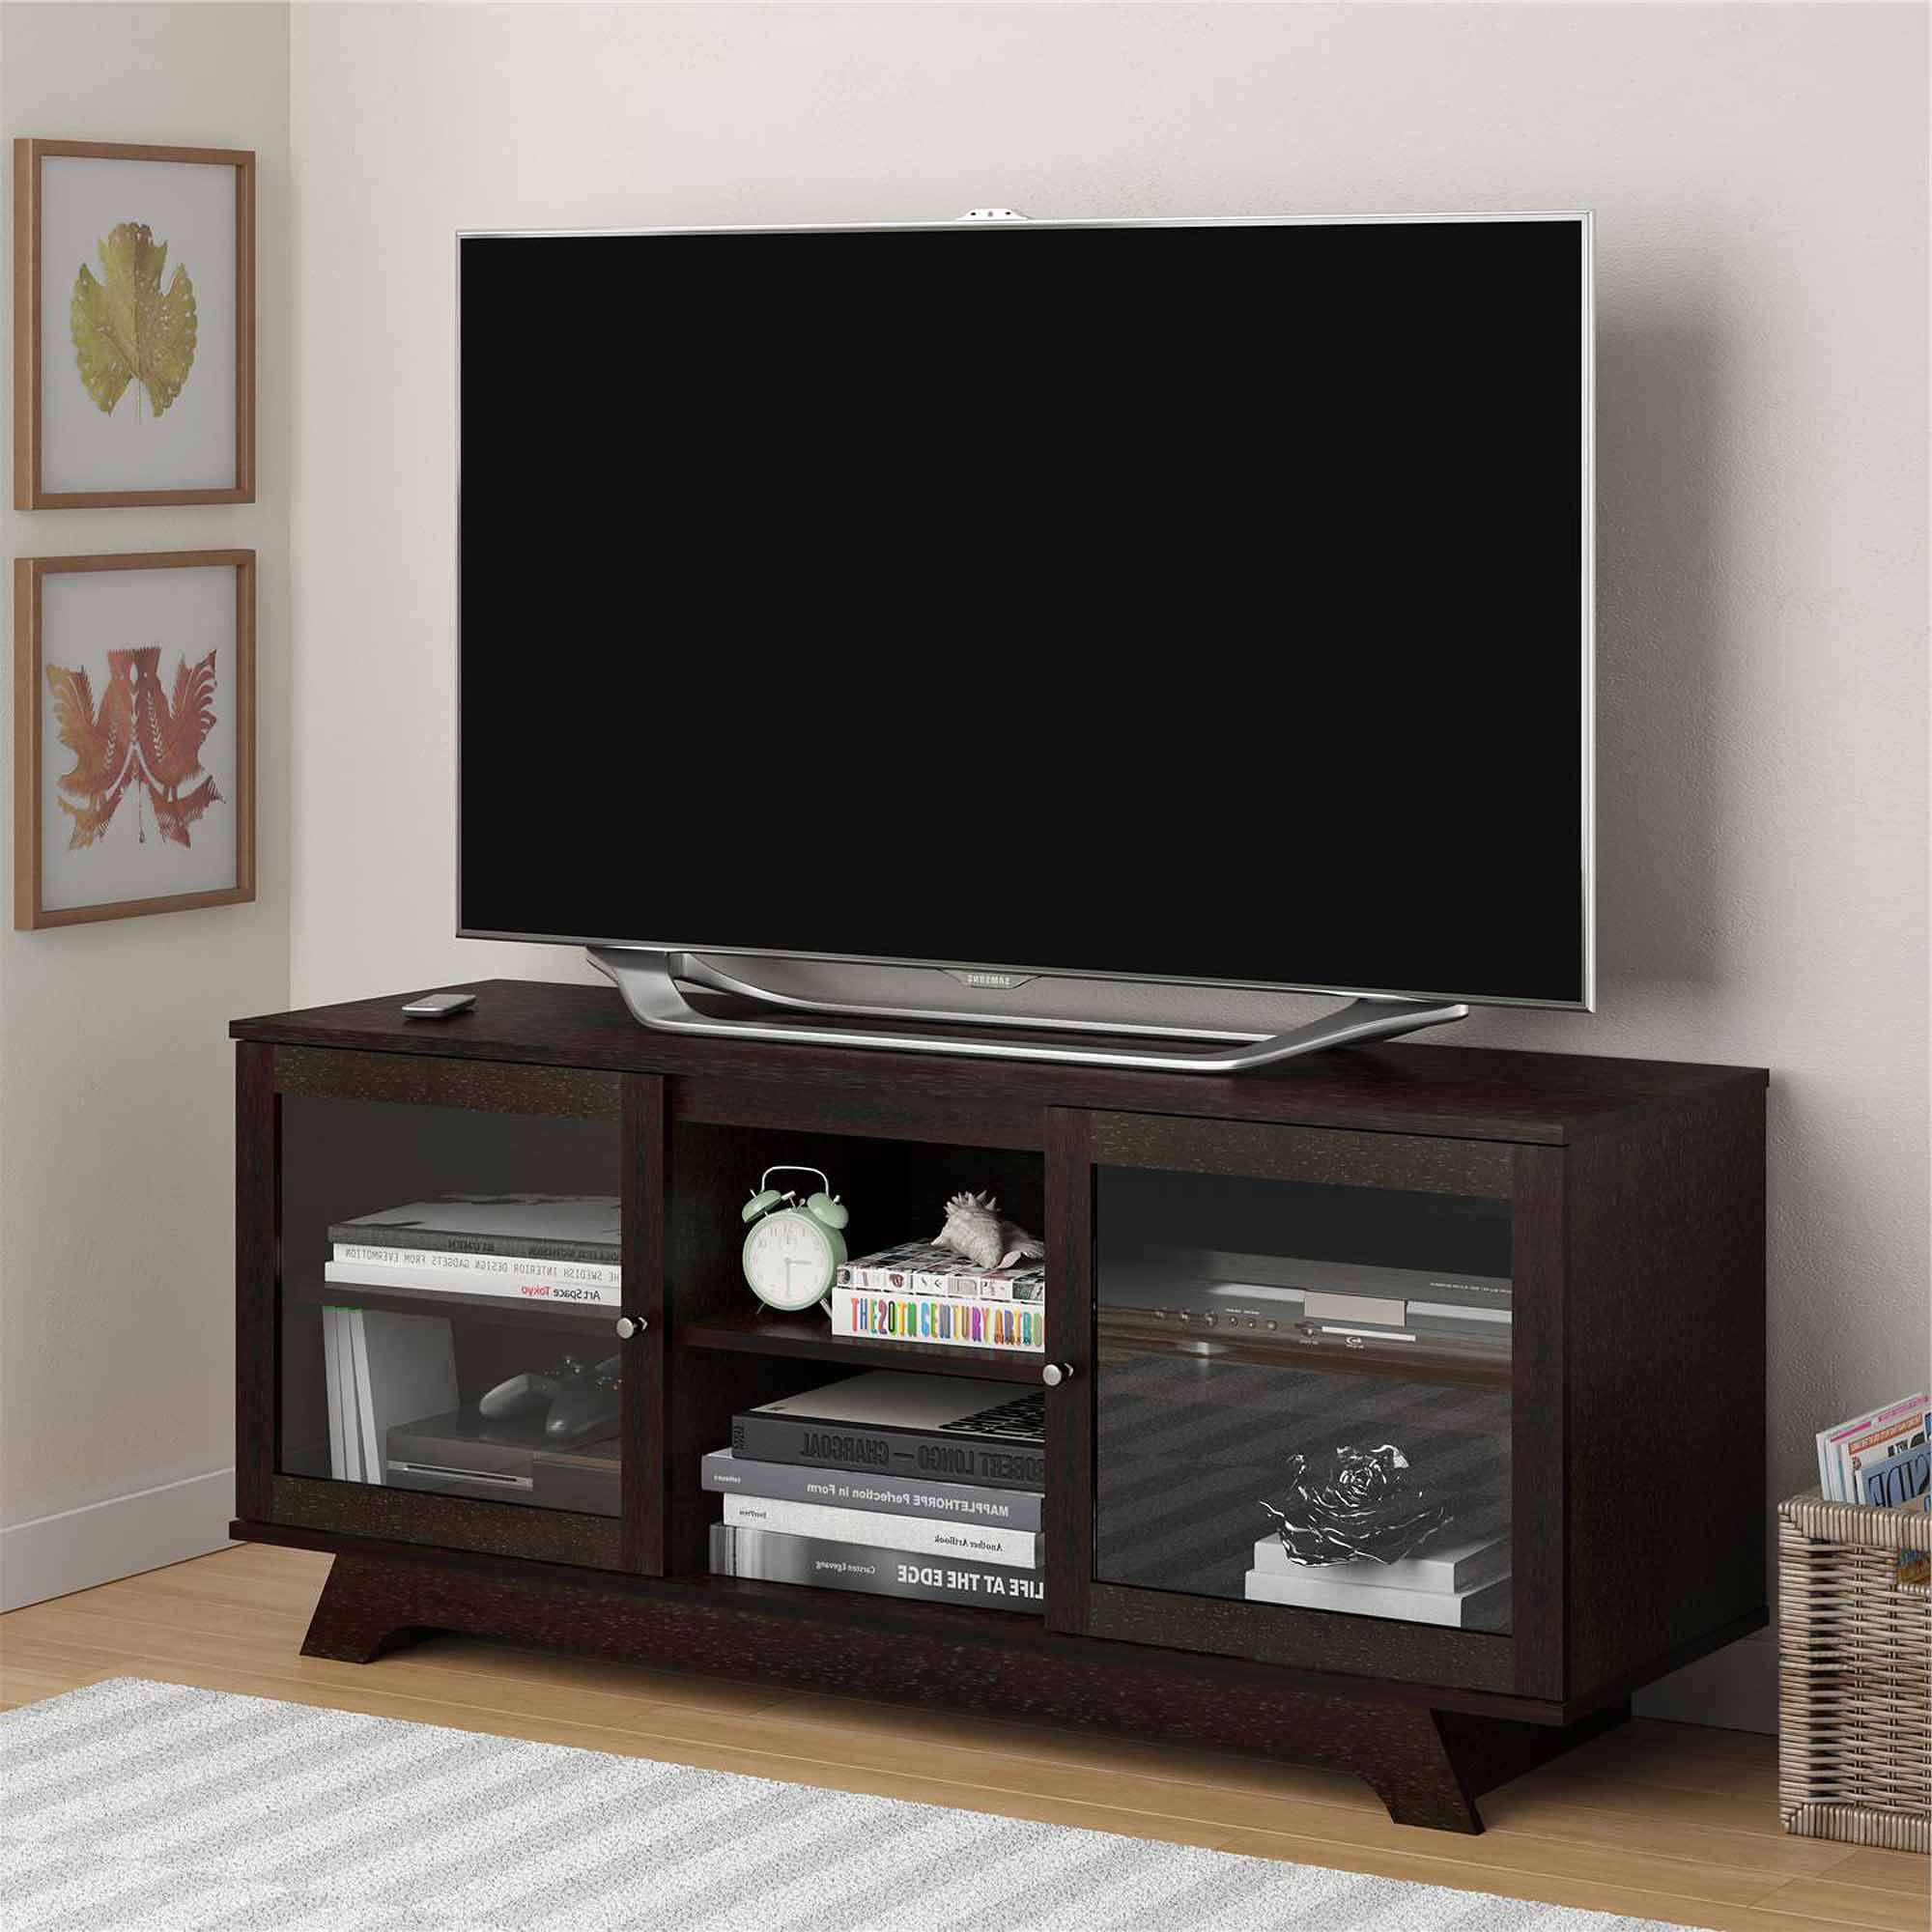 Tv Stands & Entertainment Centers – Walmart Intended For Wooden Tv Stands For 50 Inch Tv (View 11 of 15)